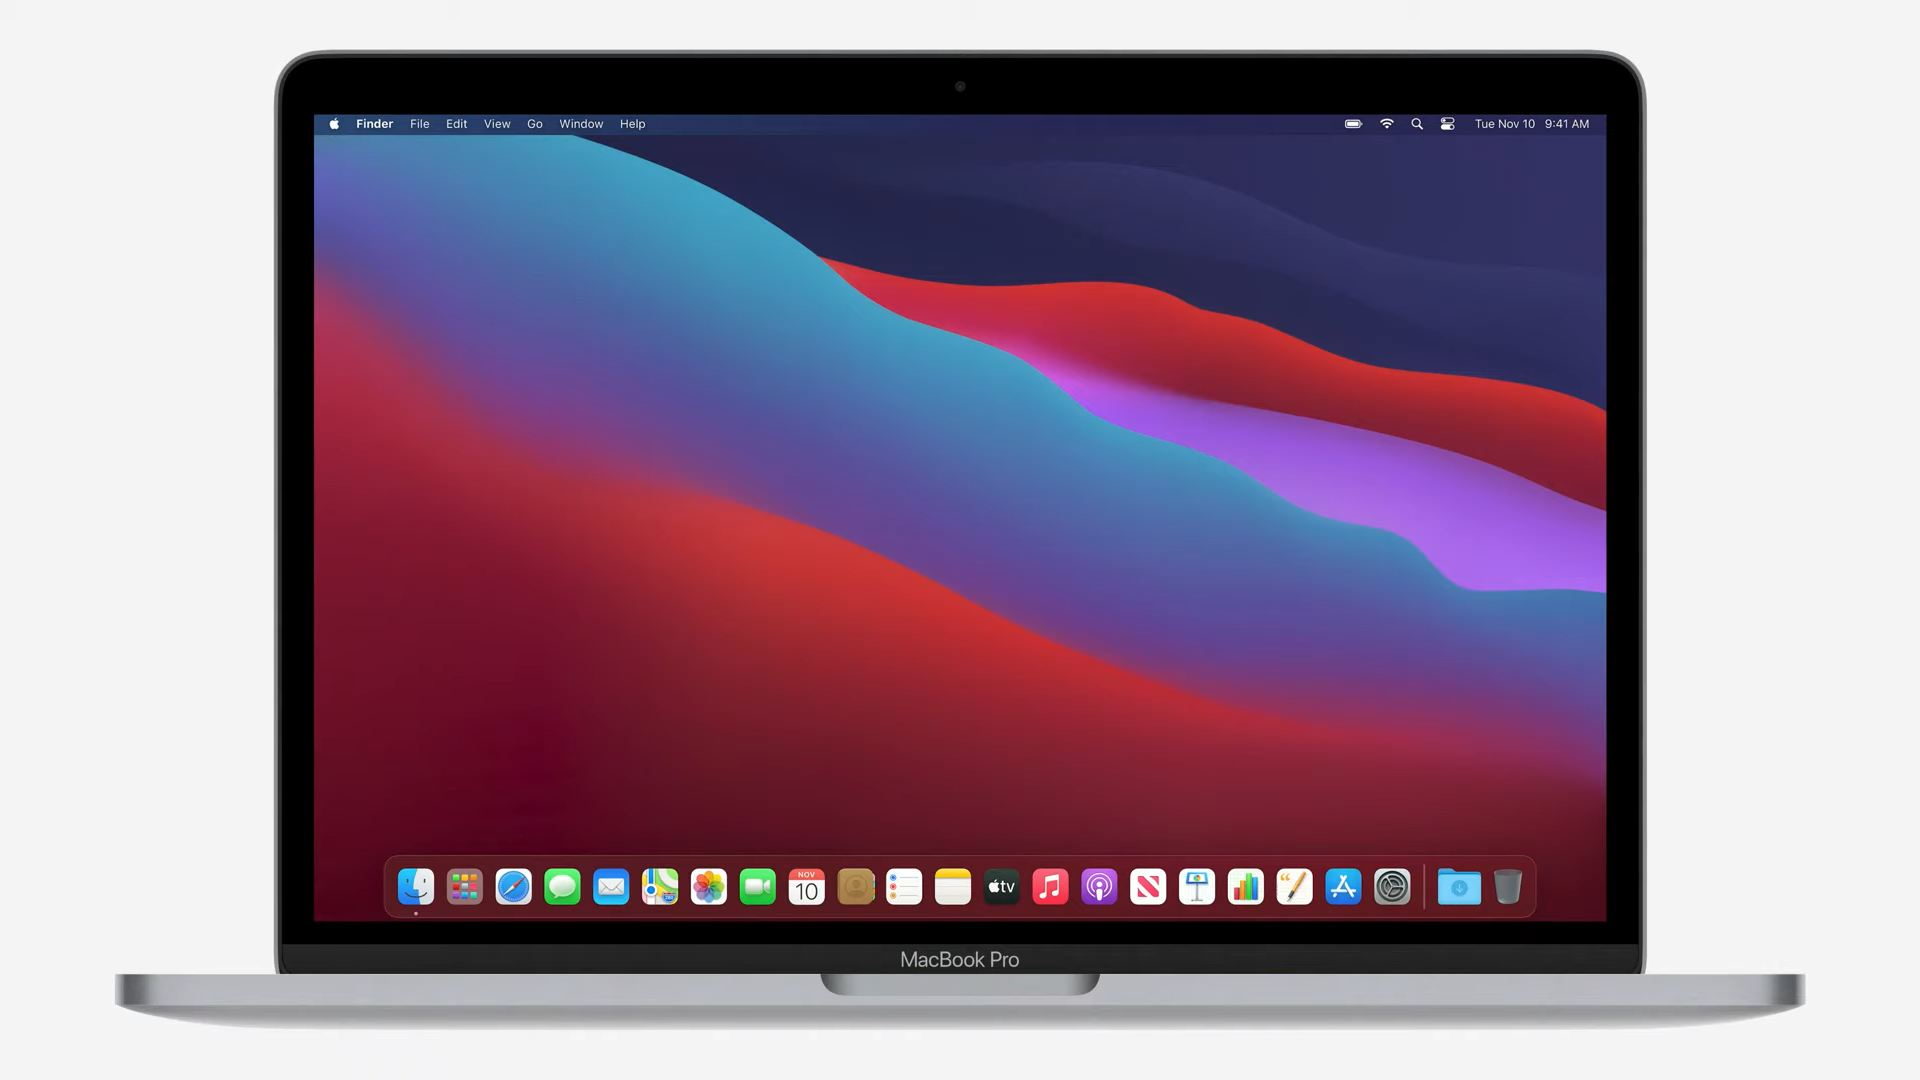 MacBook con procesador Apple M1 aún puede ejecutar el sistema operativo Windows 10